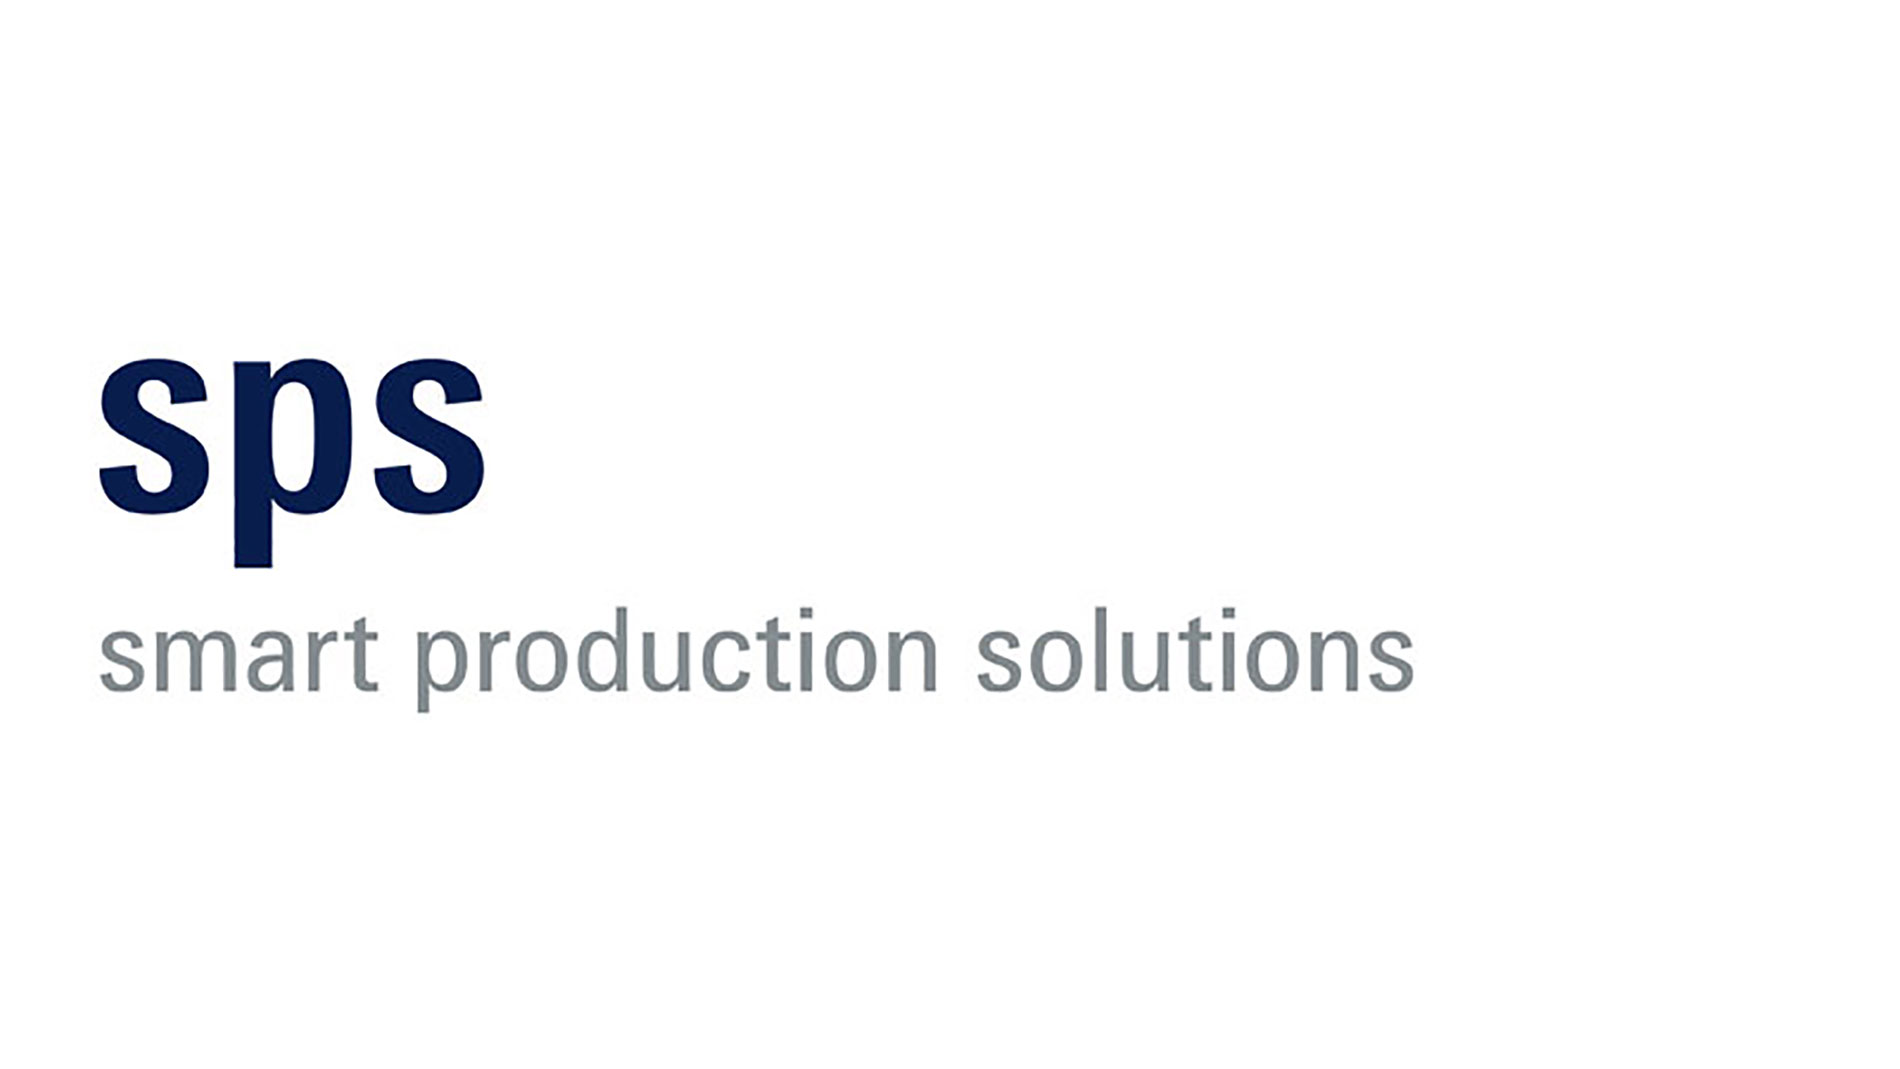 Trade fair: SPS smart productions solutions 2019